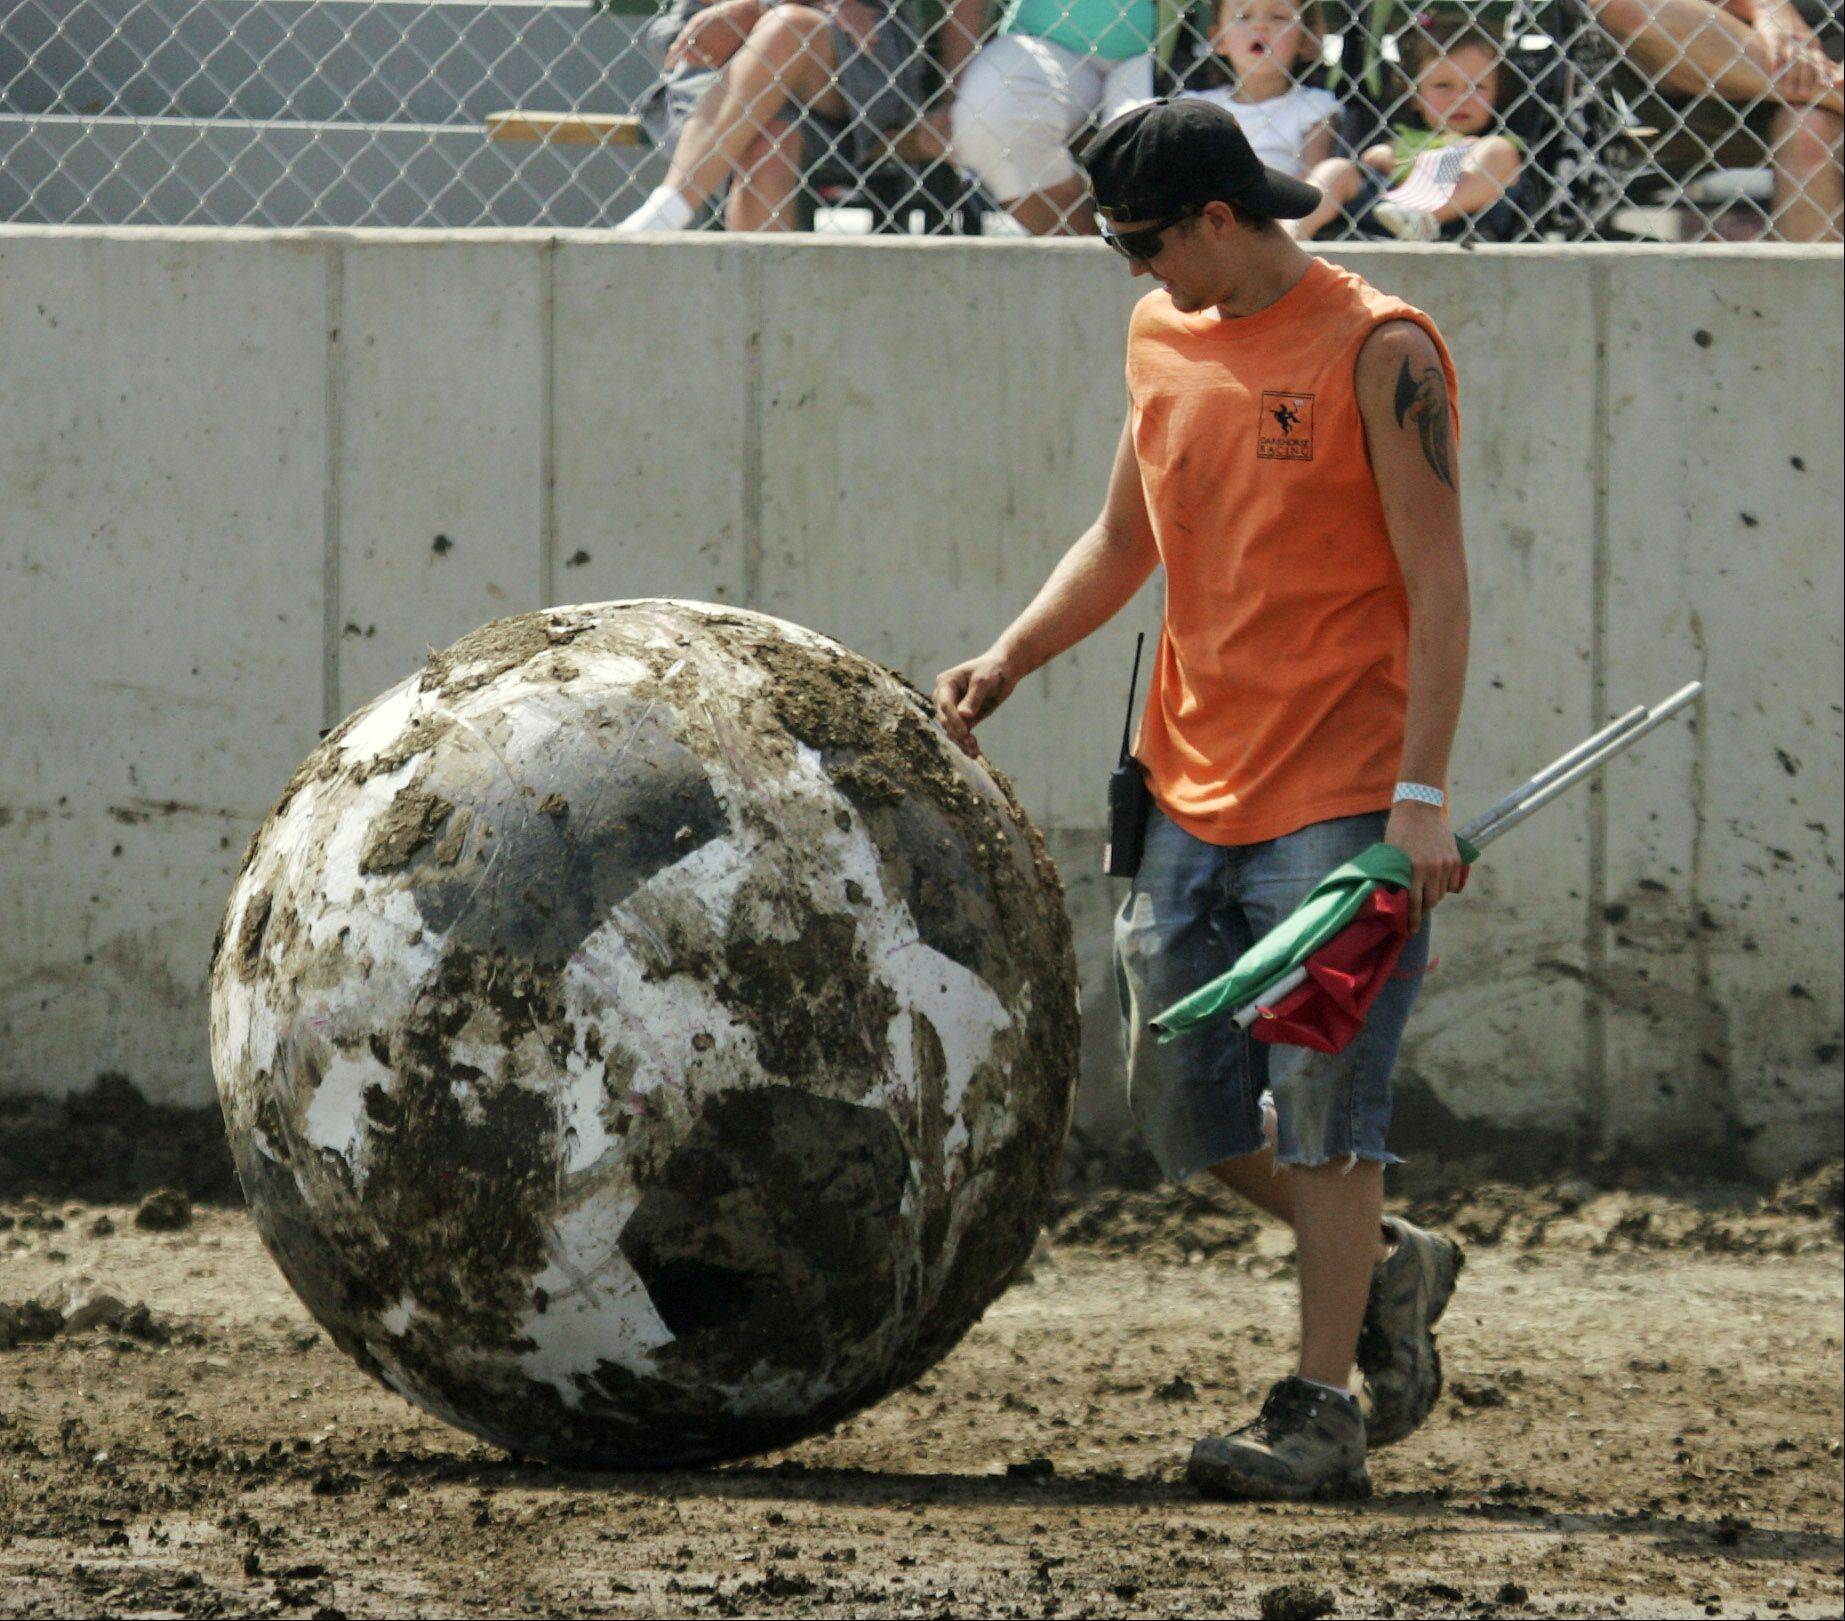 Flagman Zach Lentz moves the 400 lb. ball to the middle of the field during Auto Soccer at the Lake County Fair Sunday in Grayslake.